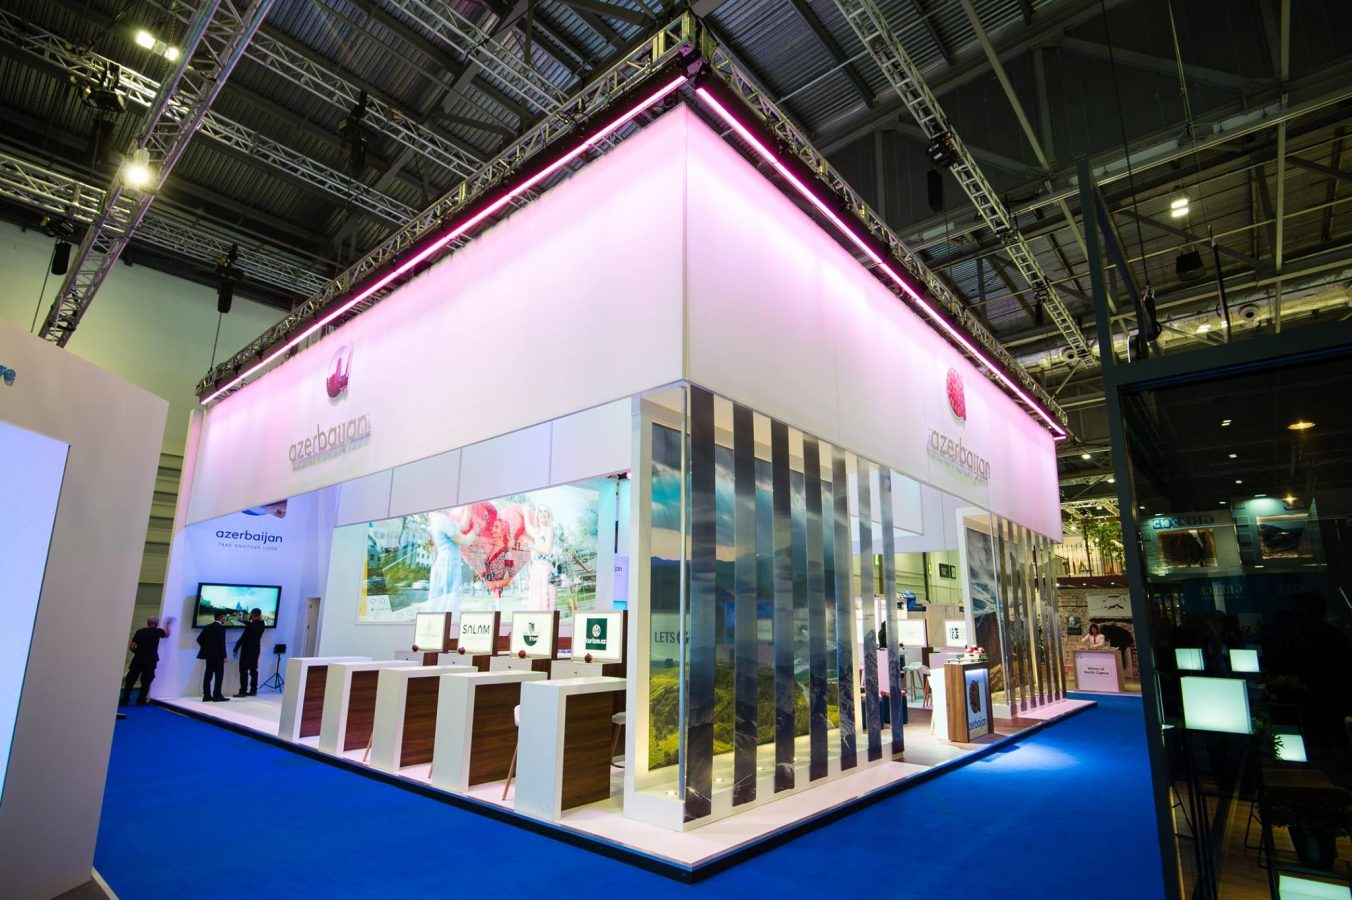 Marketing Exhibition Stand Years : Azerbaijan asks travelers to quot take another look at wtm